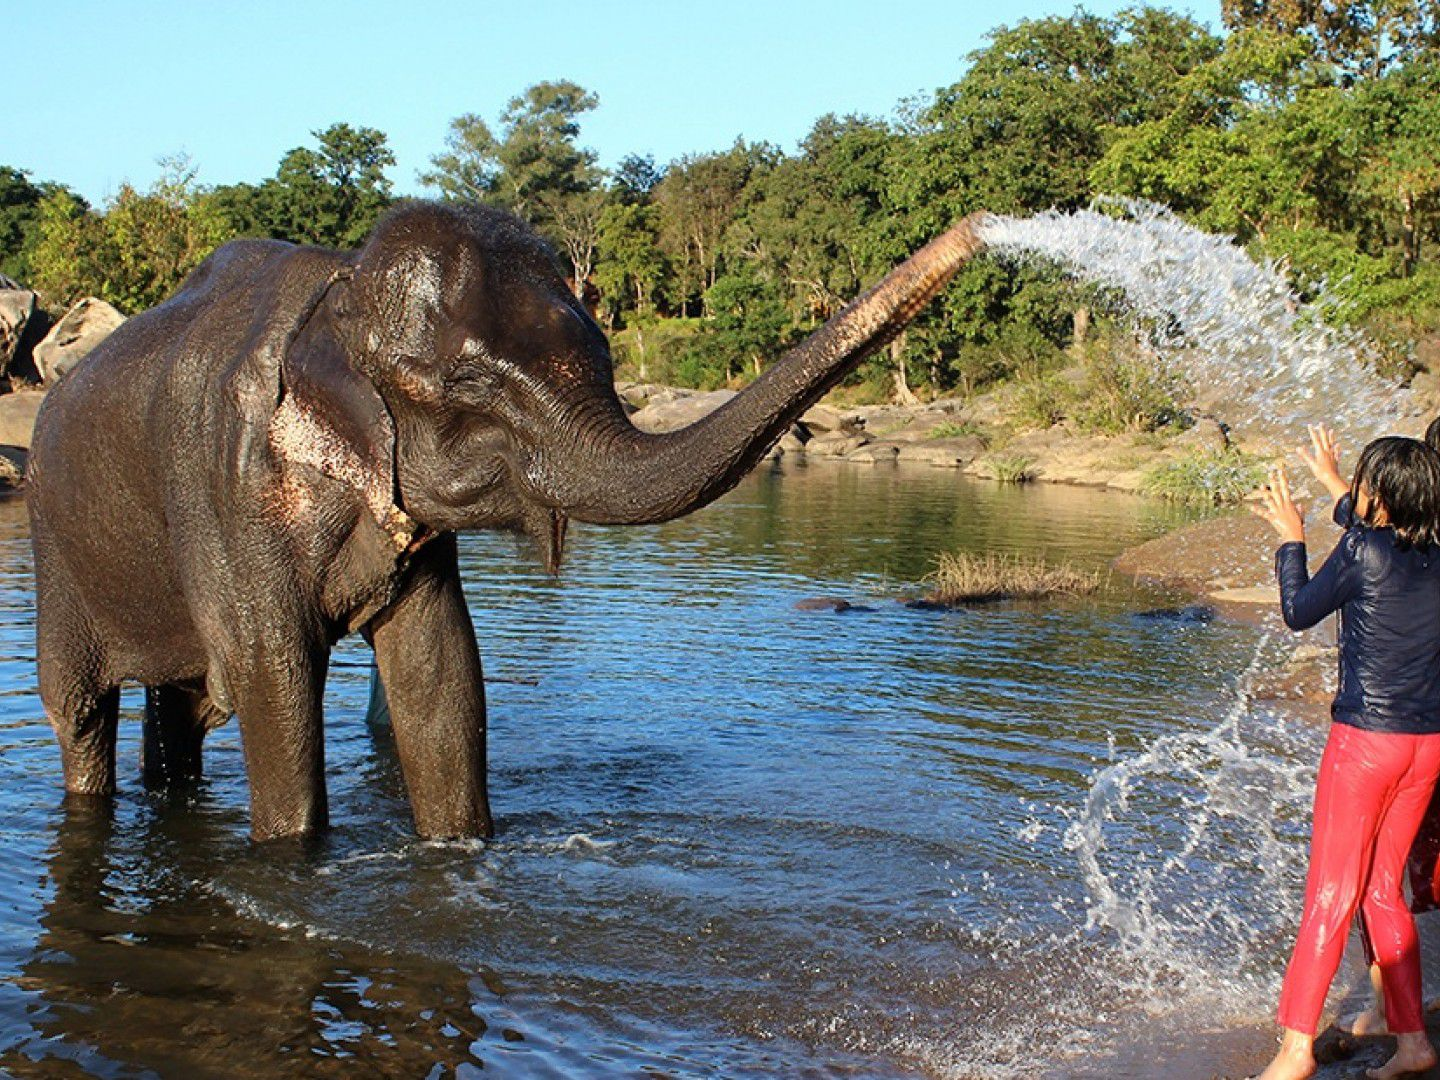 Where to See Elephants in India: 4 Ethical Places